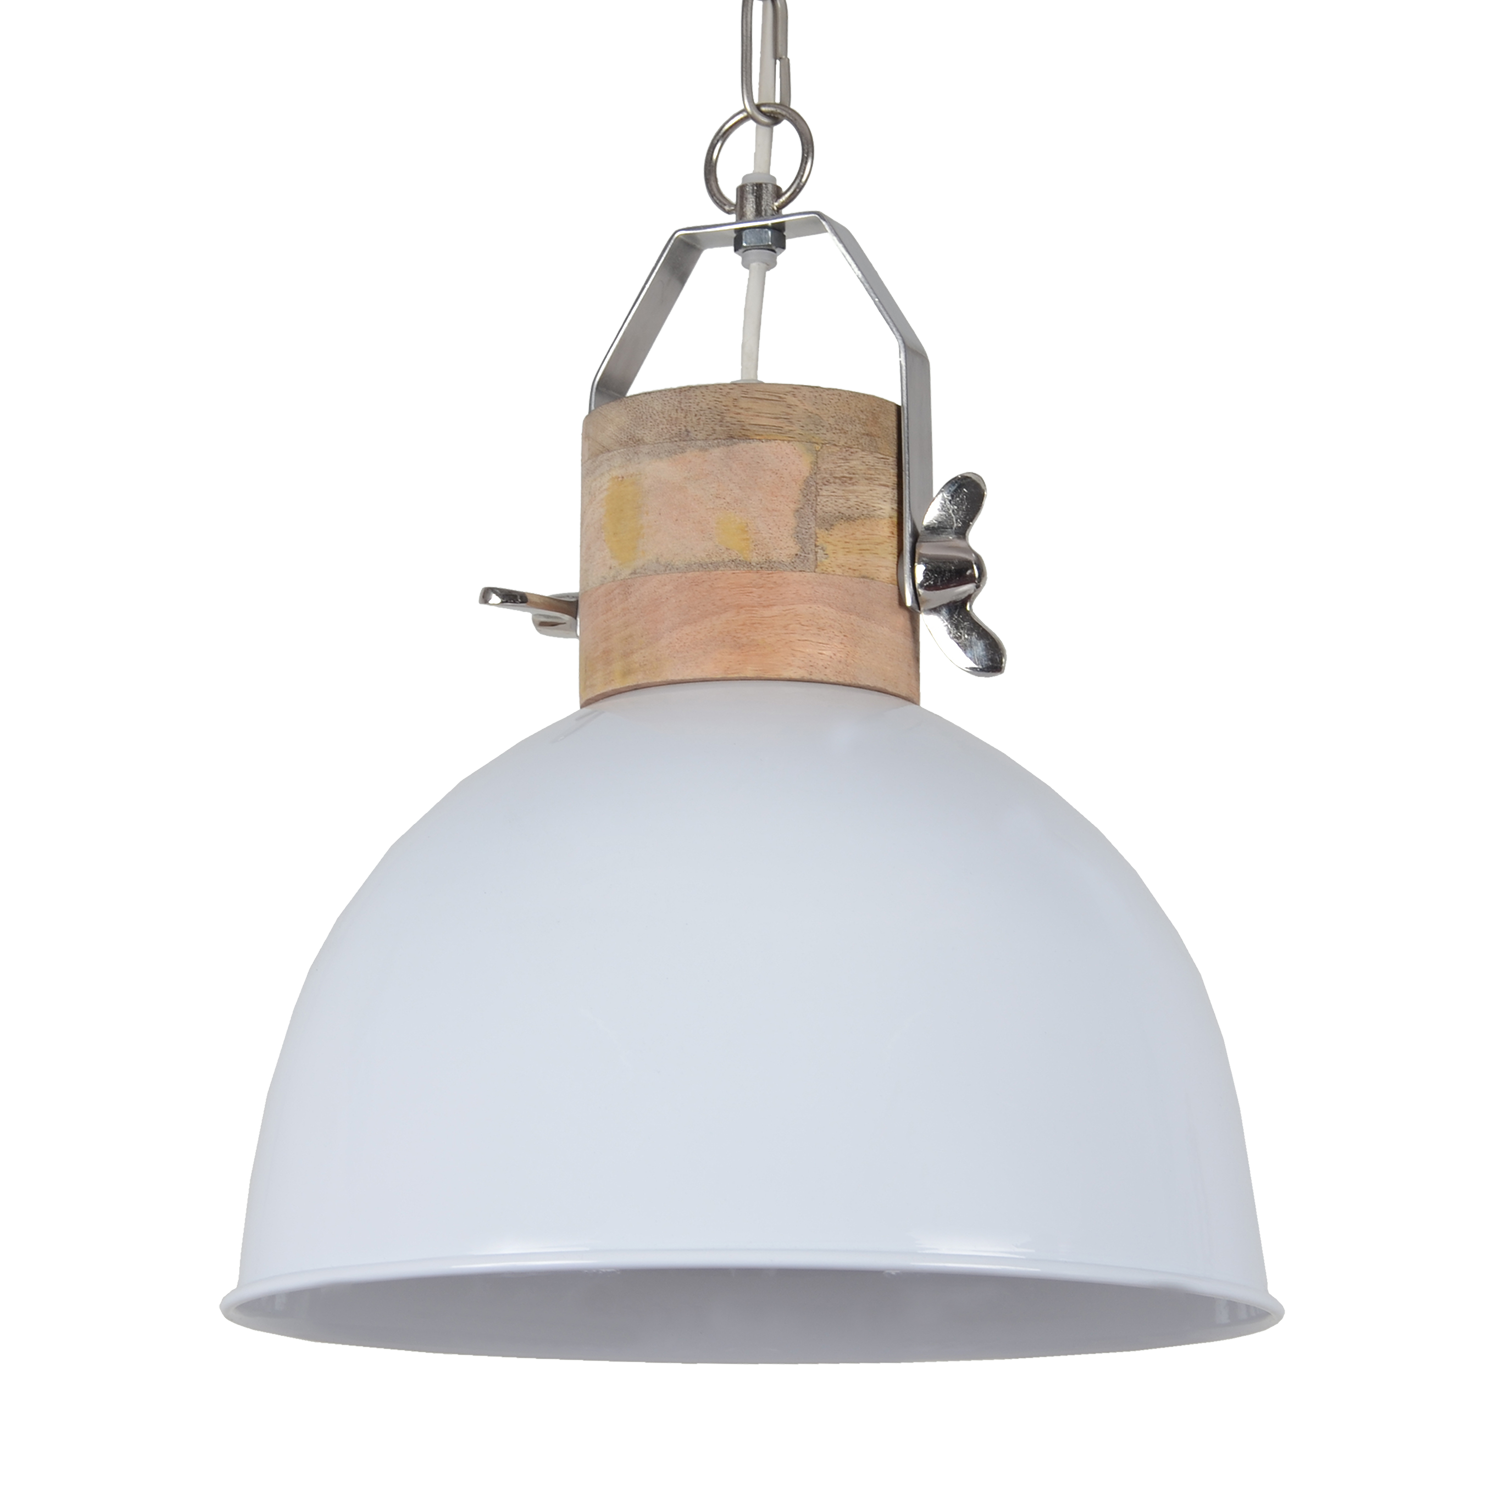 Hanglamp Fabriano 40 cm glans wit